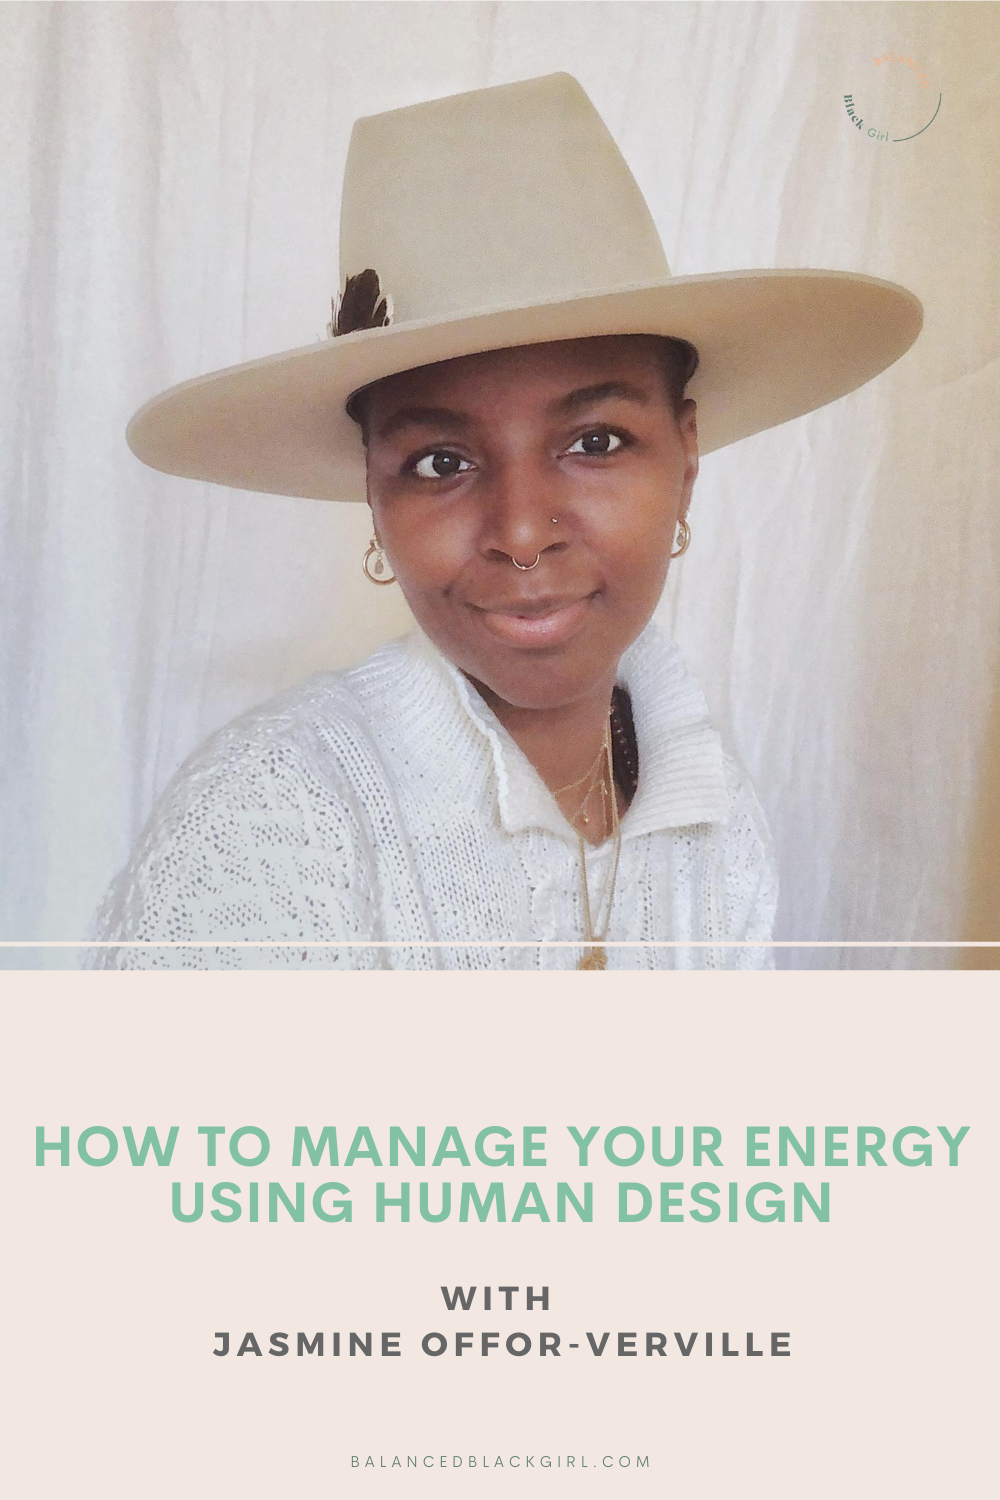 How to Manage Your Energy Using Human Design with Jasmine Offor-Verville